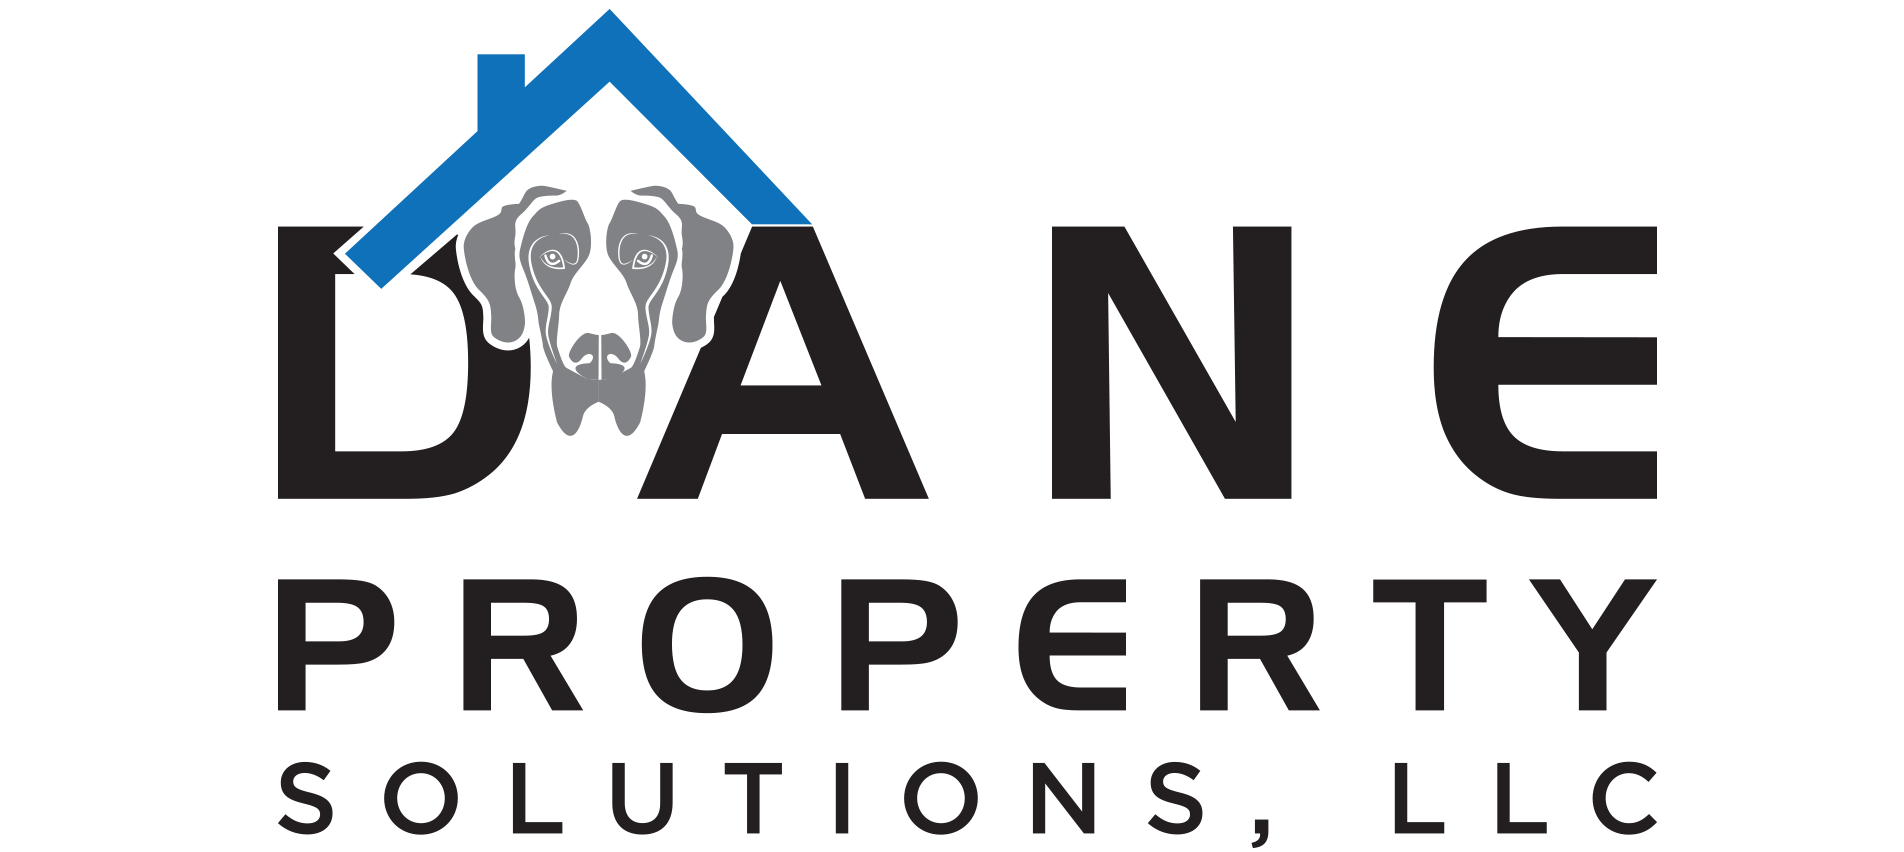 Dane Property Solutions, LLC